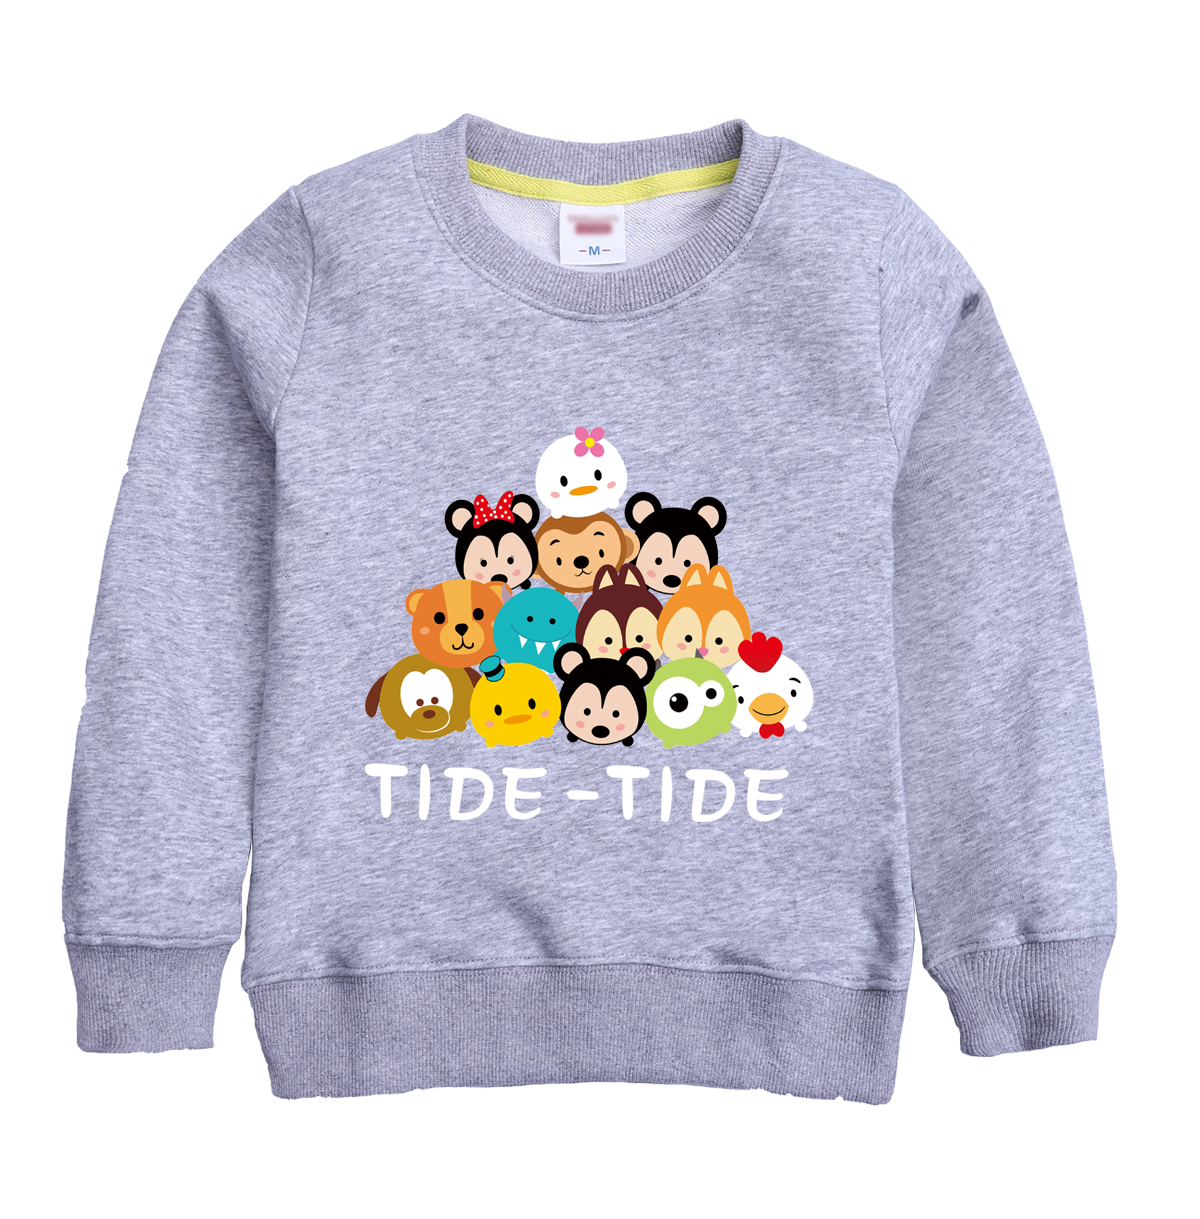 TIDE -TIDE pattern funny printed winter sweatshirt design for girl & boy with eight colors for select winter hooded clothing